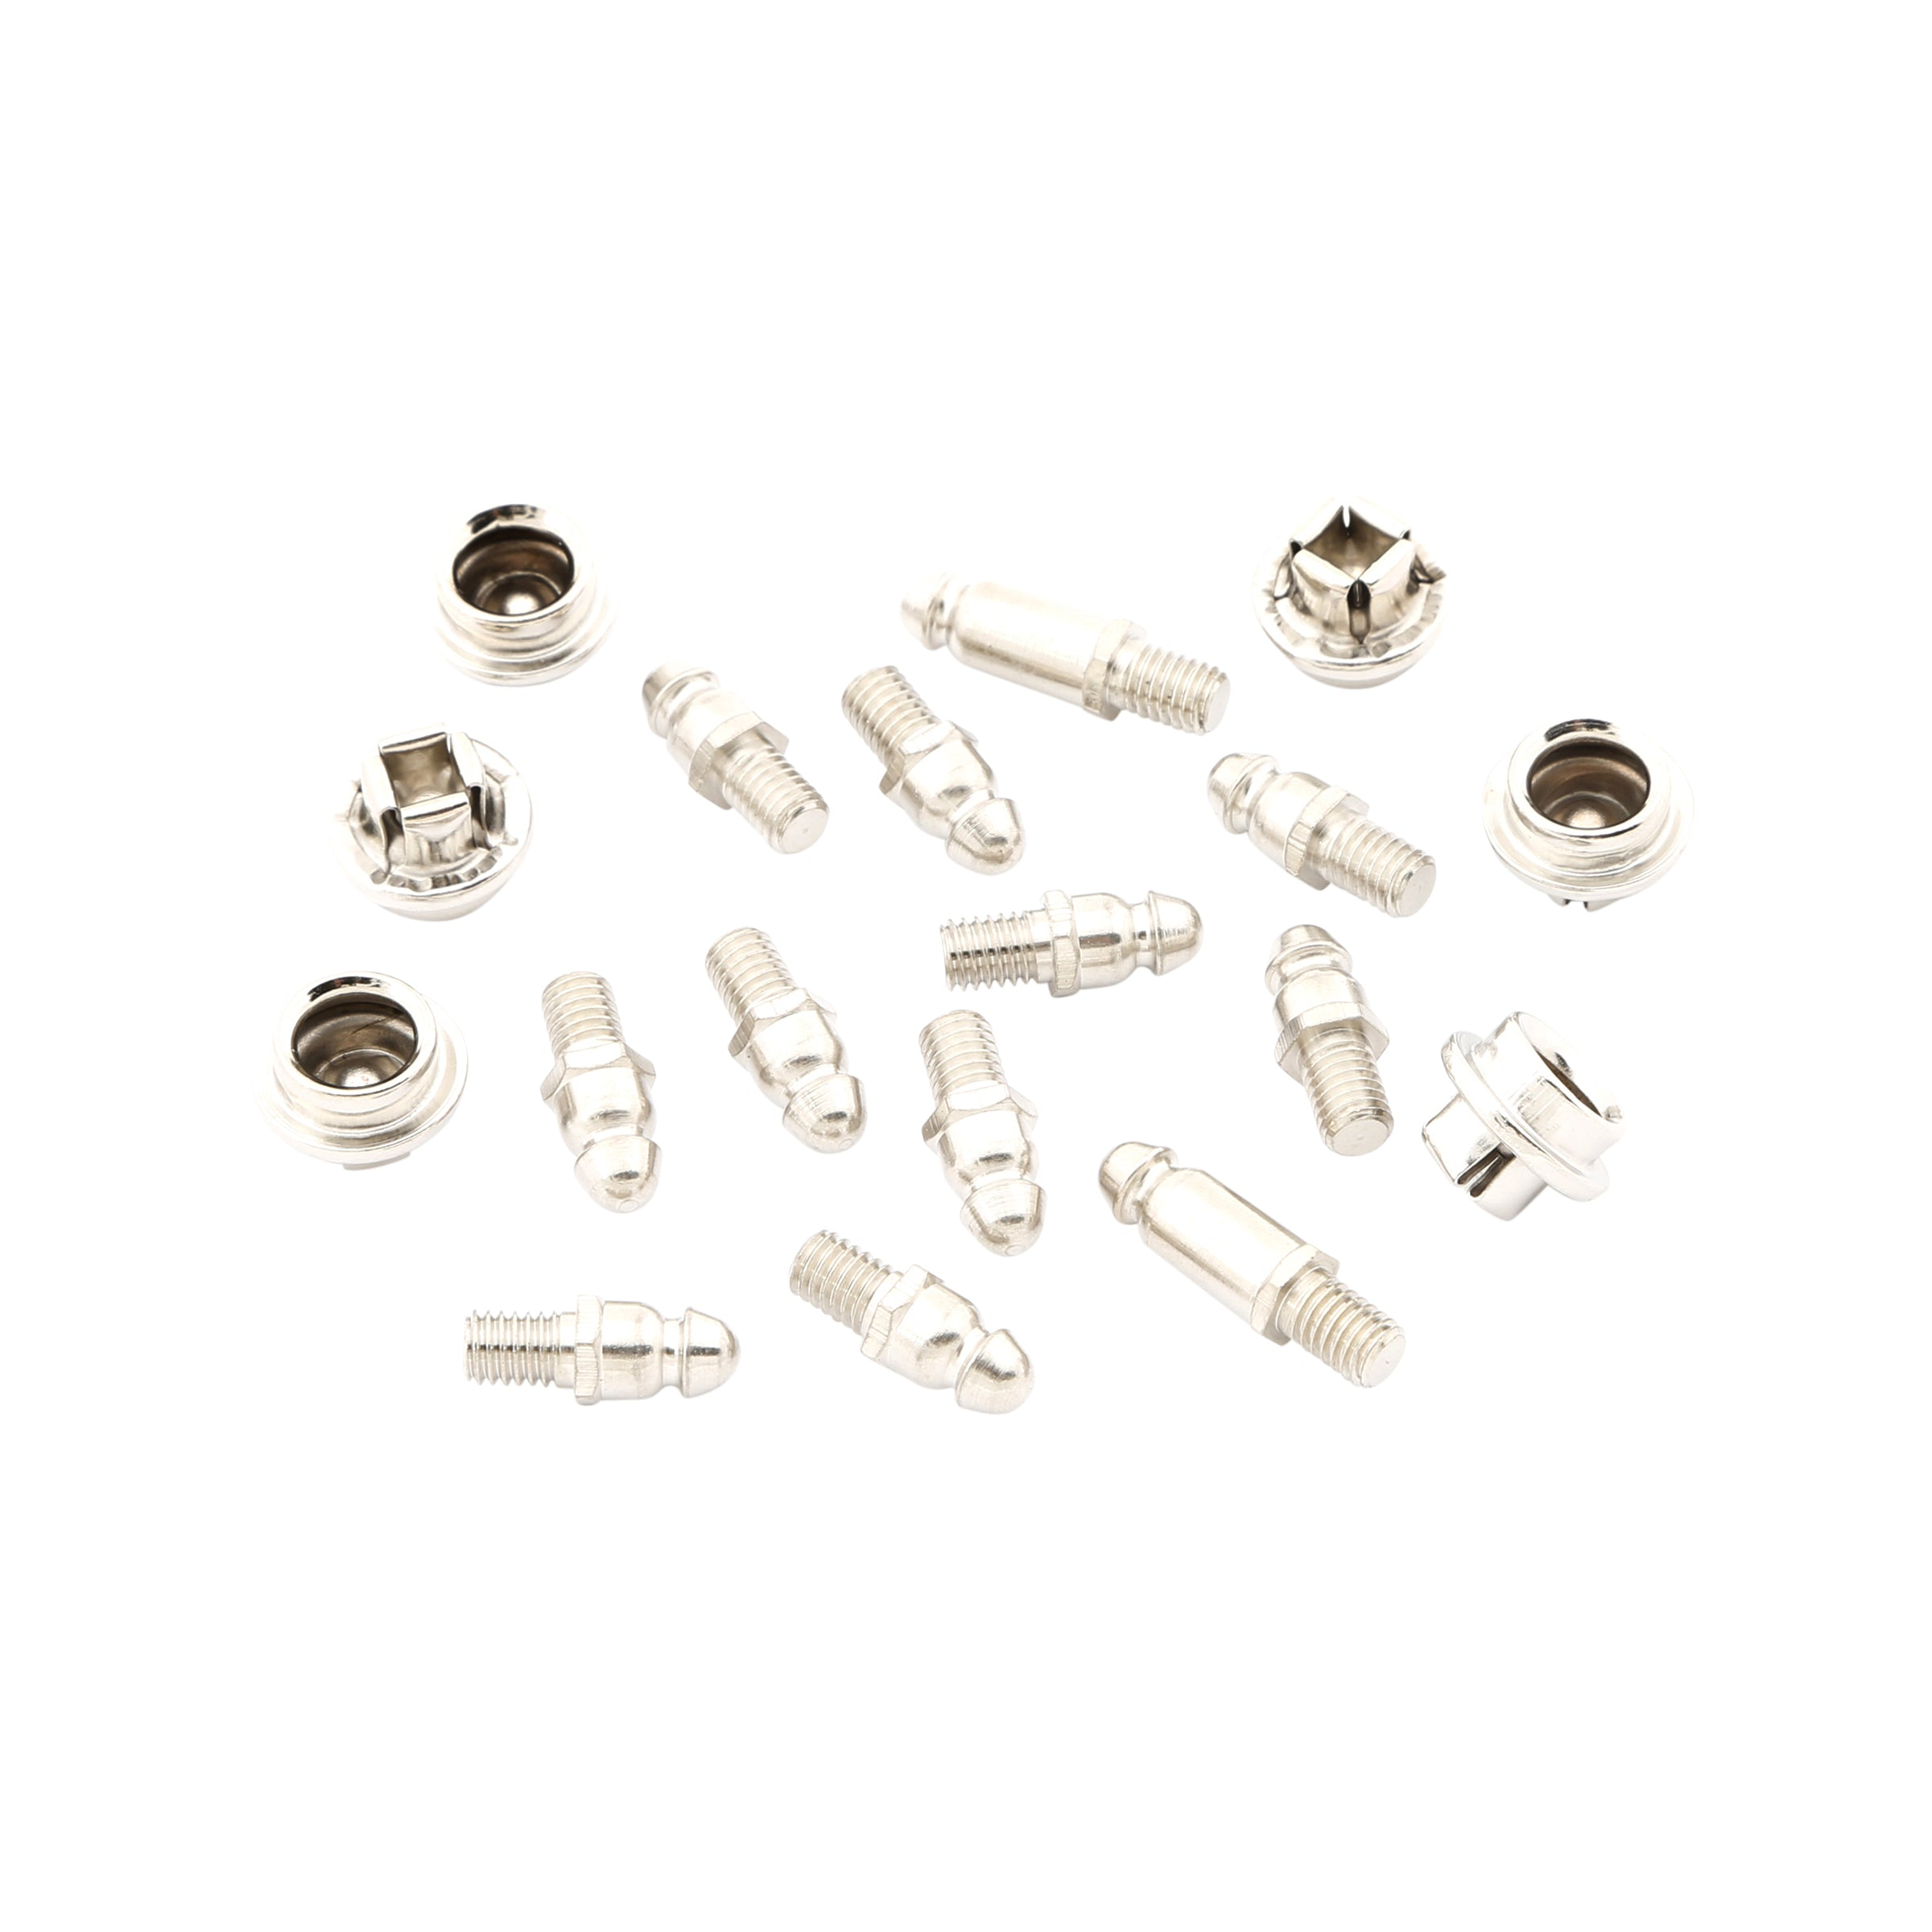 Windshield Post Curtain Studs • 1928-31 Model A Ford Open Car